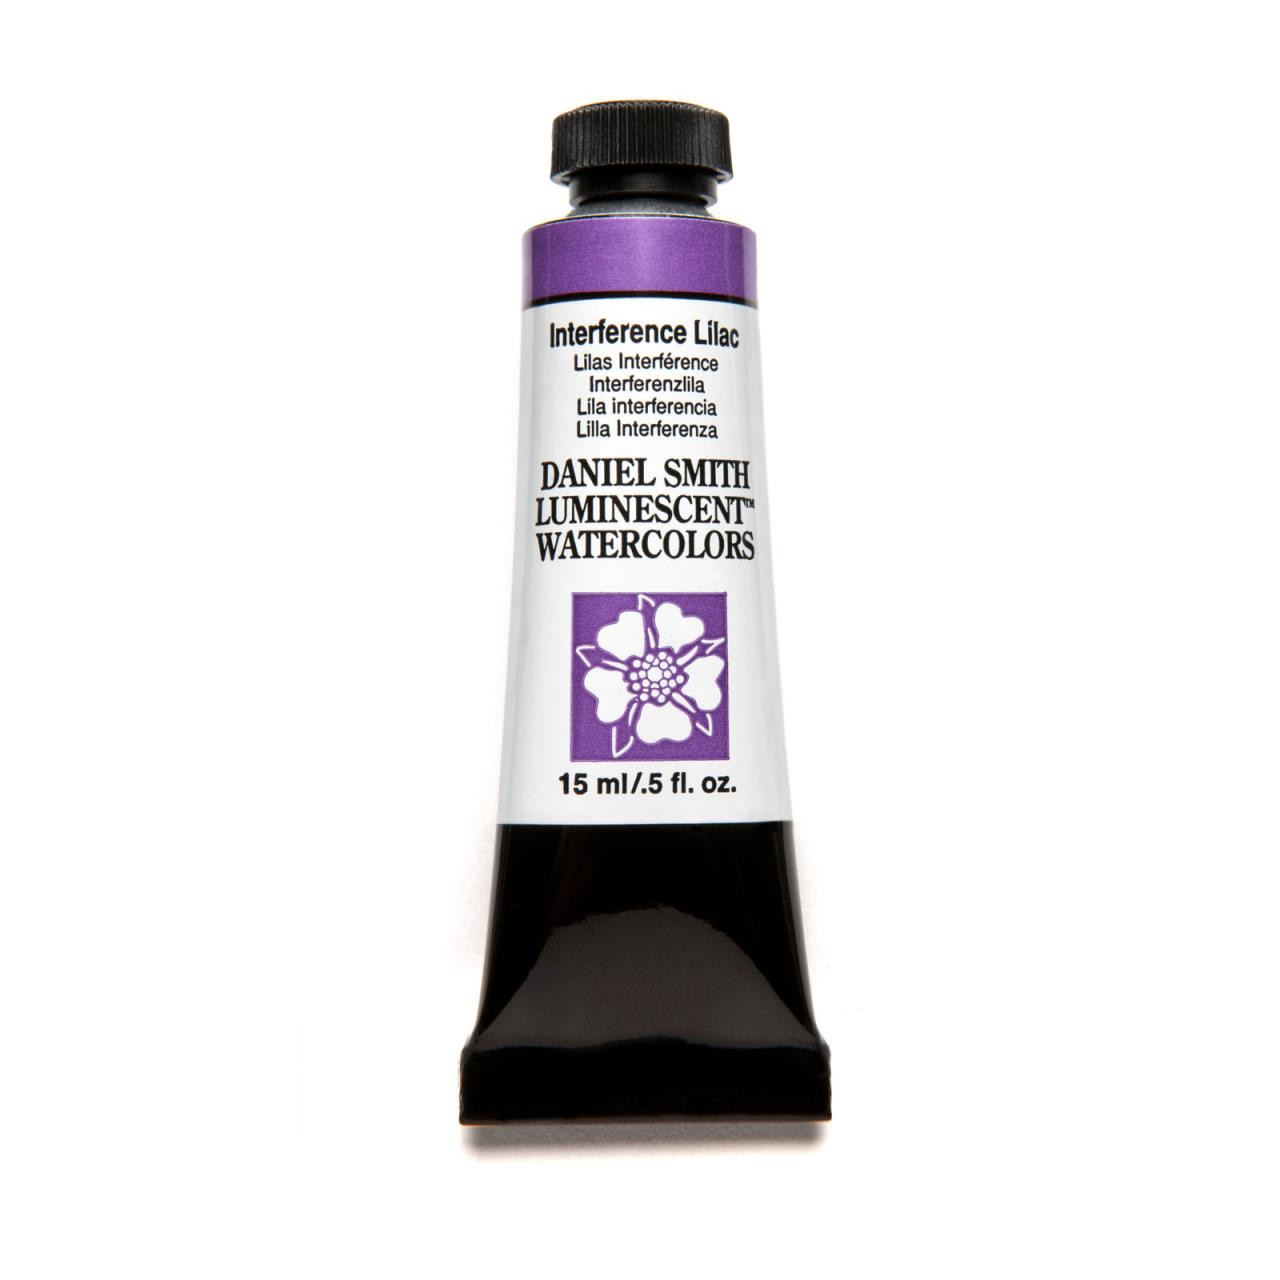 Interference Lilac (Luminescent), DANIEL SMITH Extra Fine Watercolors 15ml Tubes -